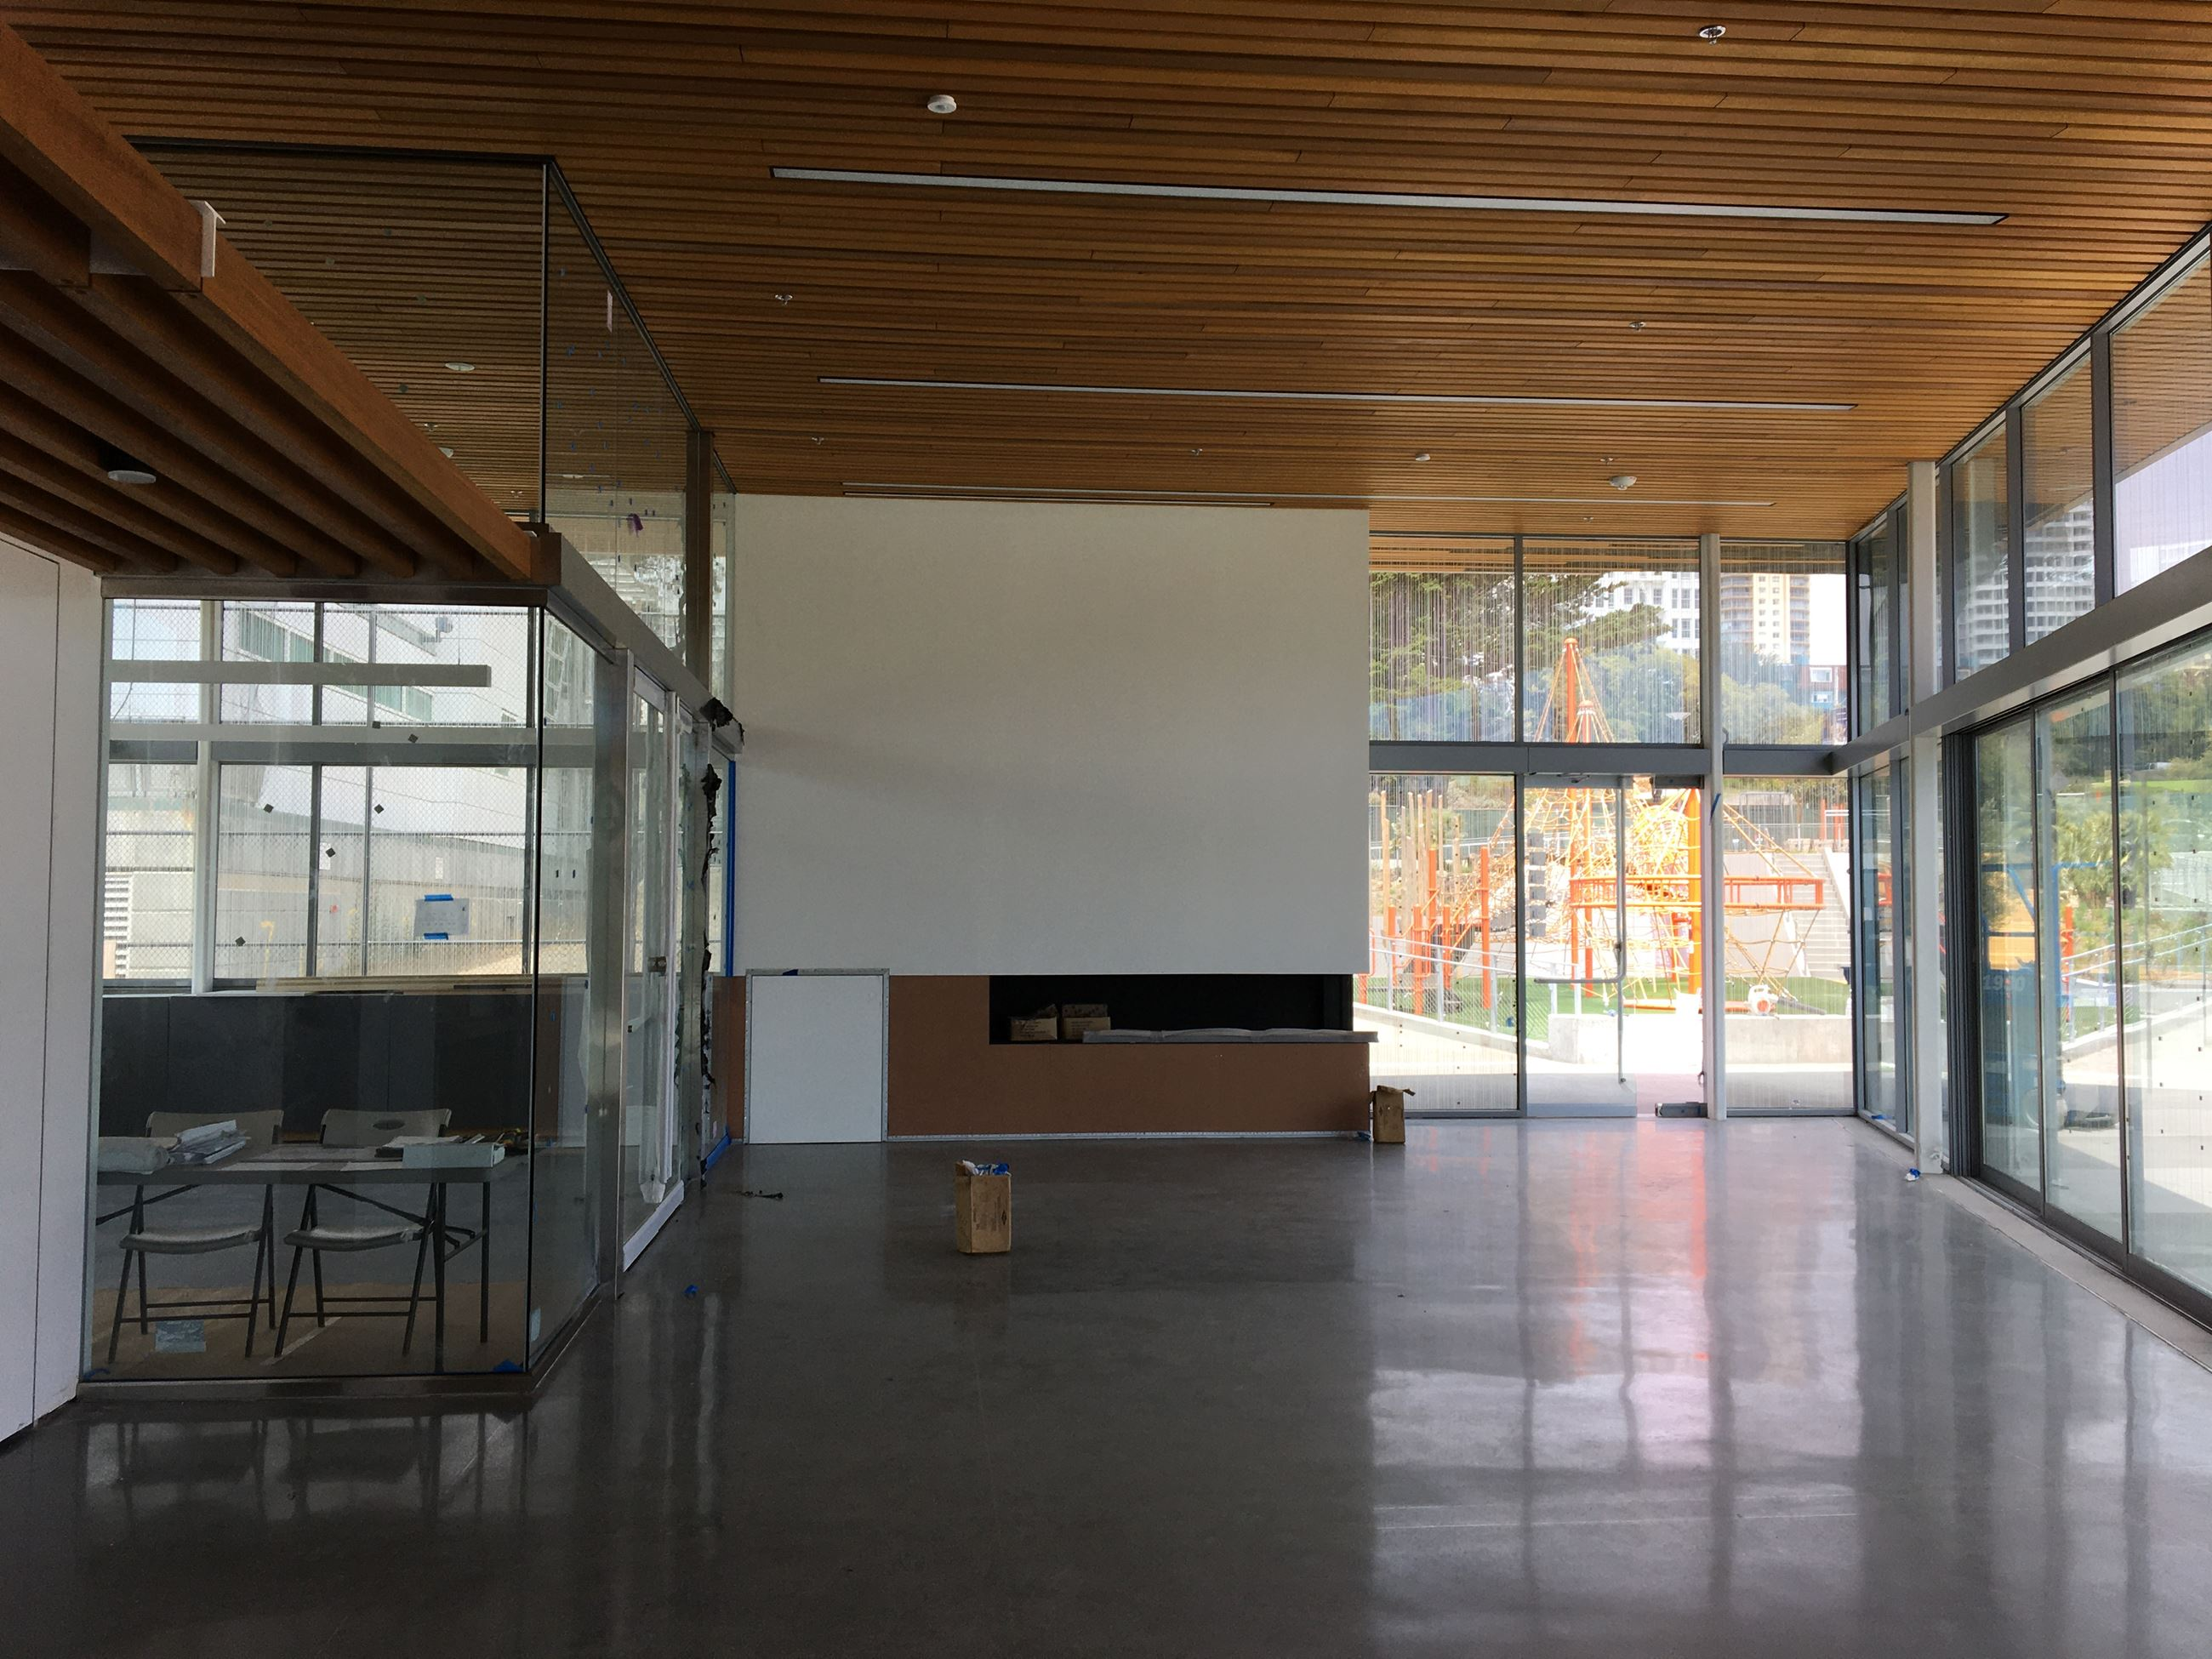 Community room with glass walls inside the new clubhouse